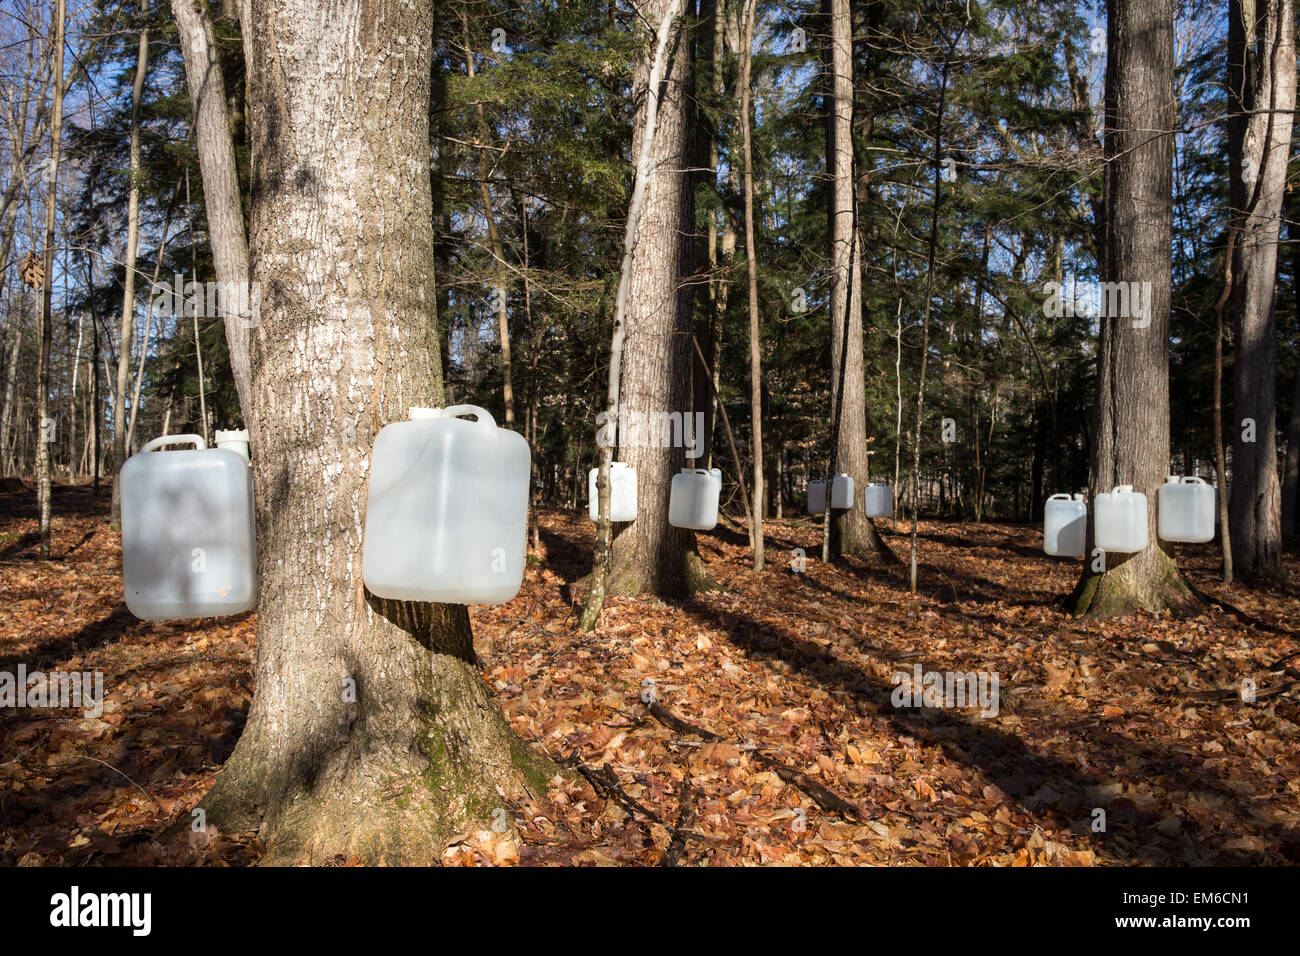 Tapping sugar maple trees for their sap, which will be made into maple syrup.  Early morning light and long shadows. Stock Photo